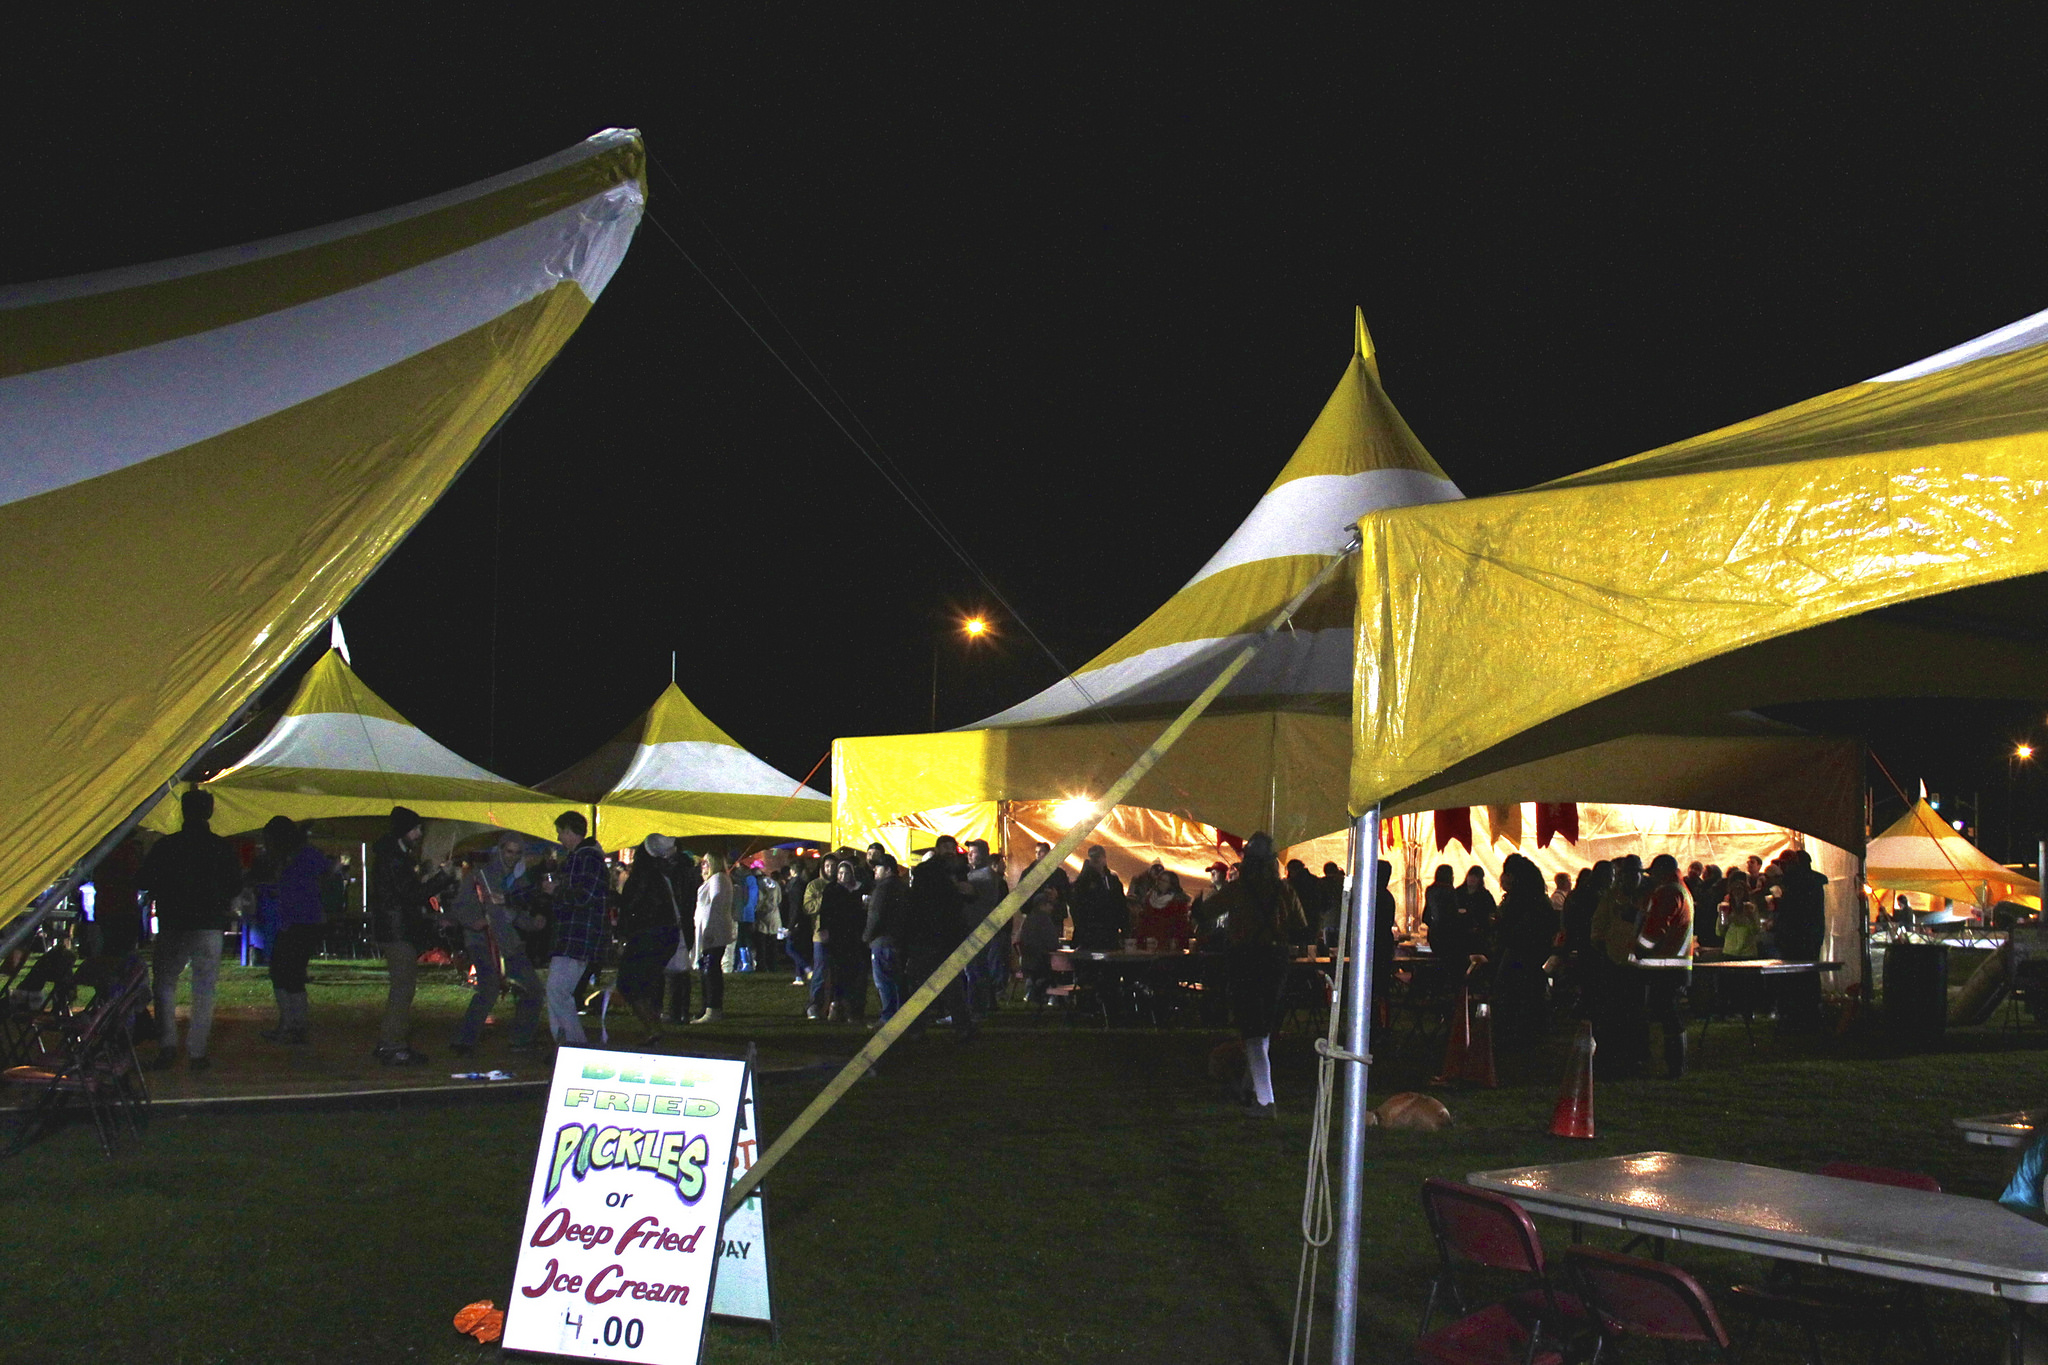 NLFB rents tents and other event equipment at competitive prices.